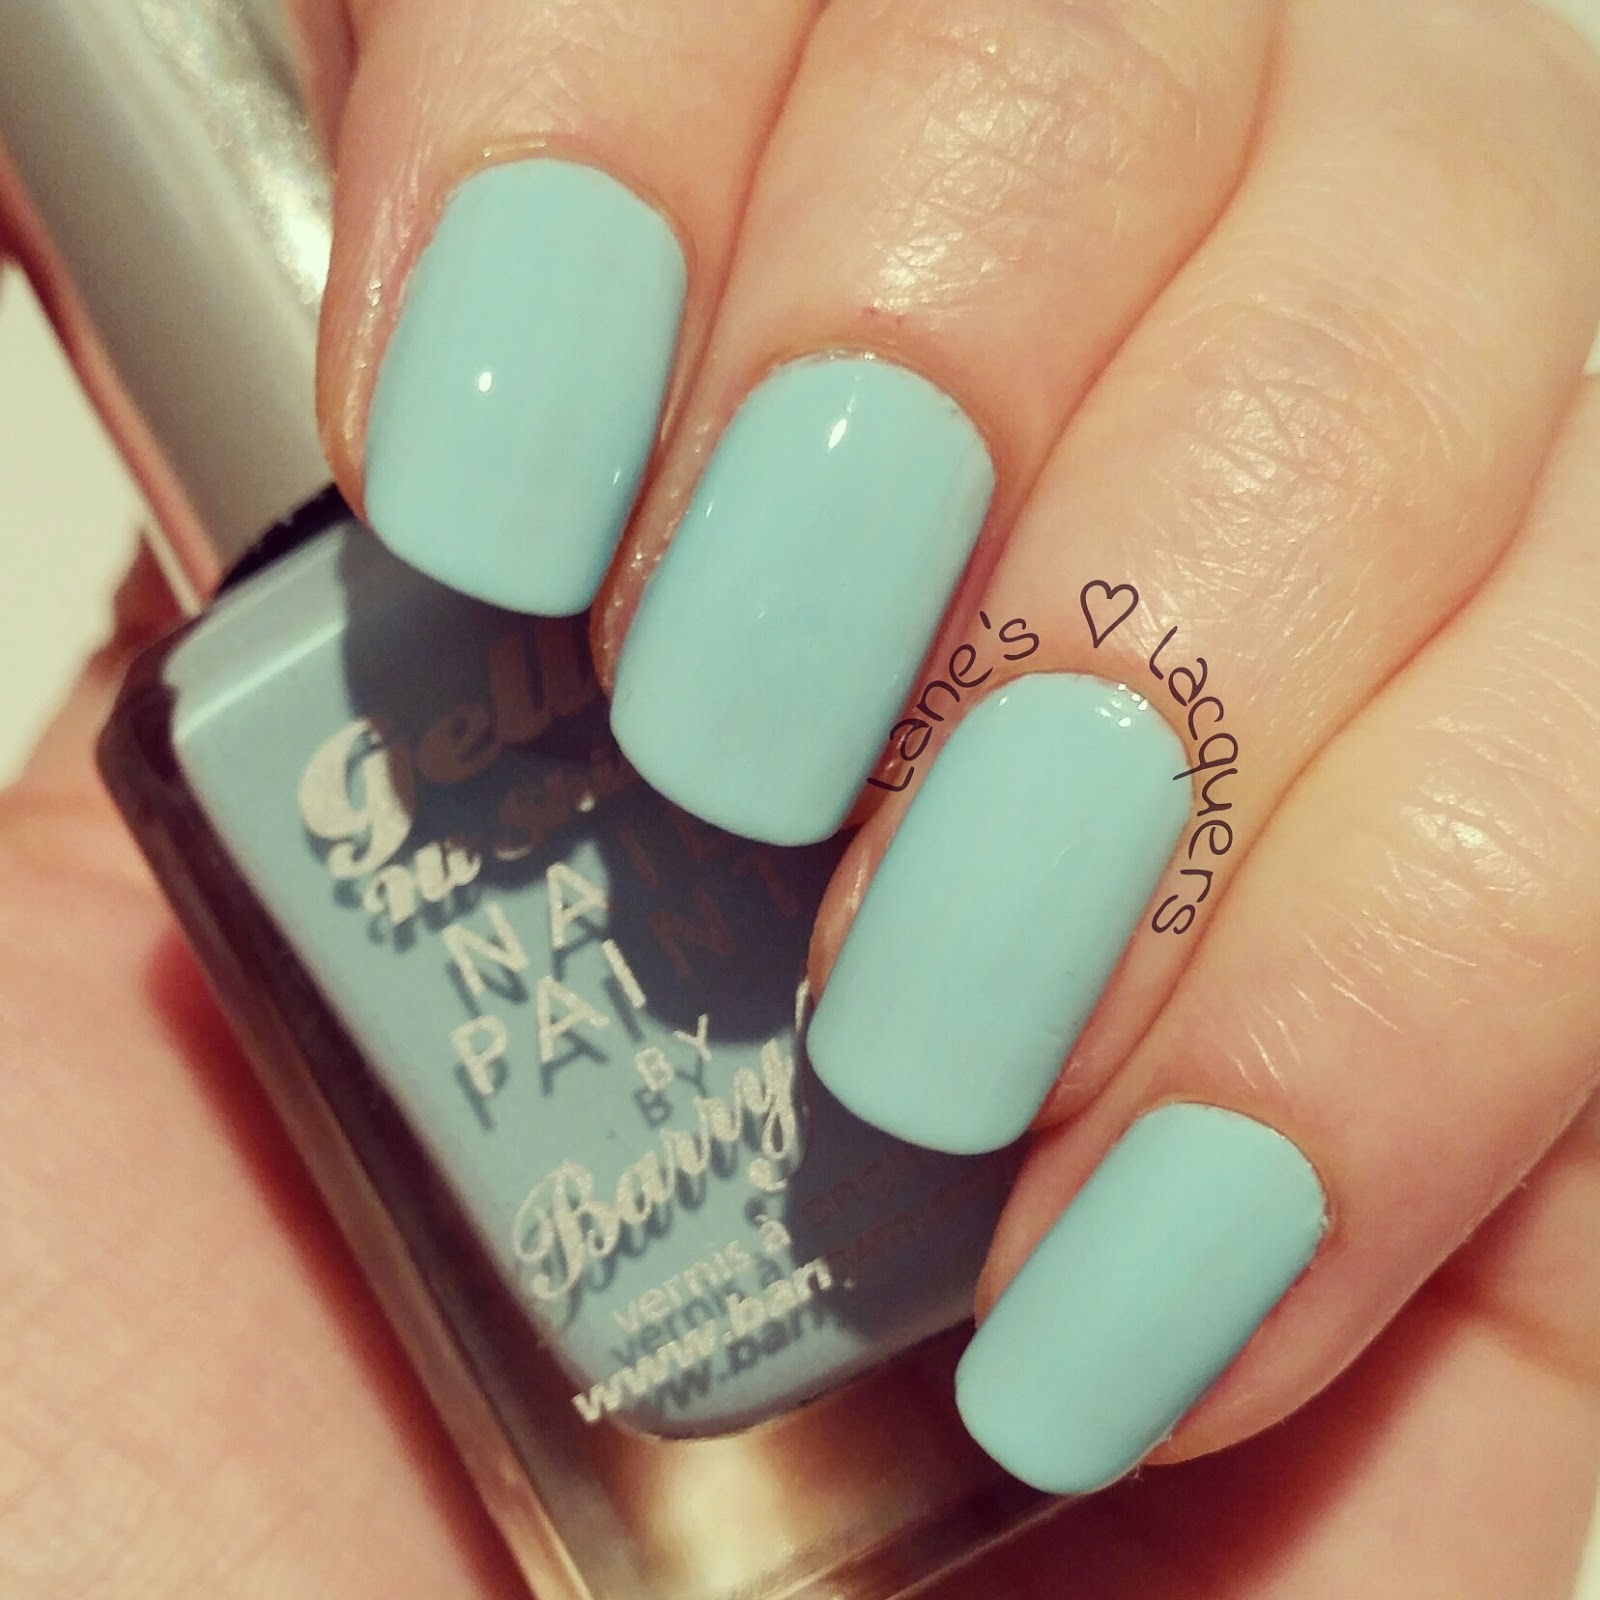 new-barry-m-gelly-sky-blue-swatch-nails